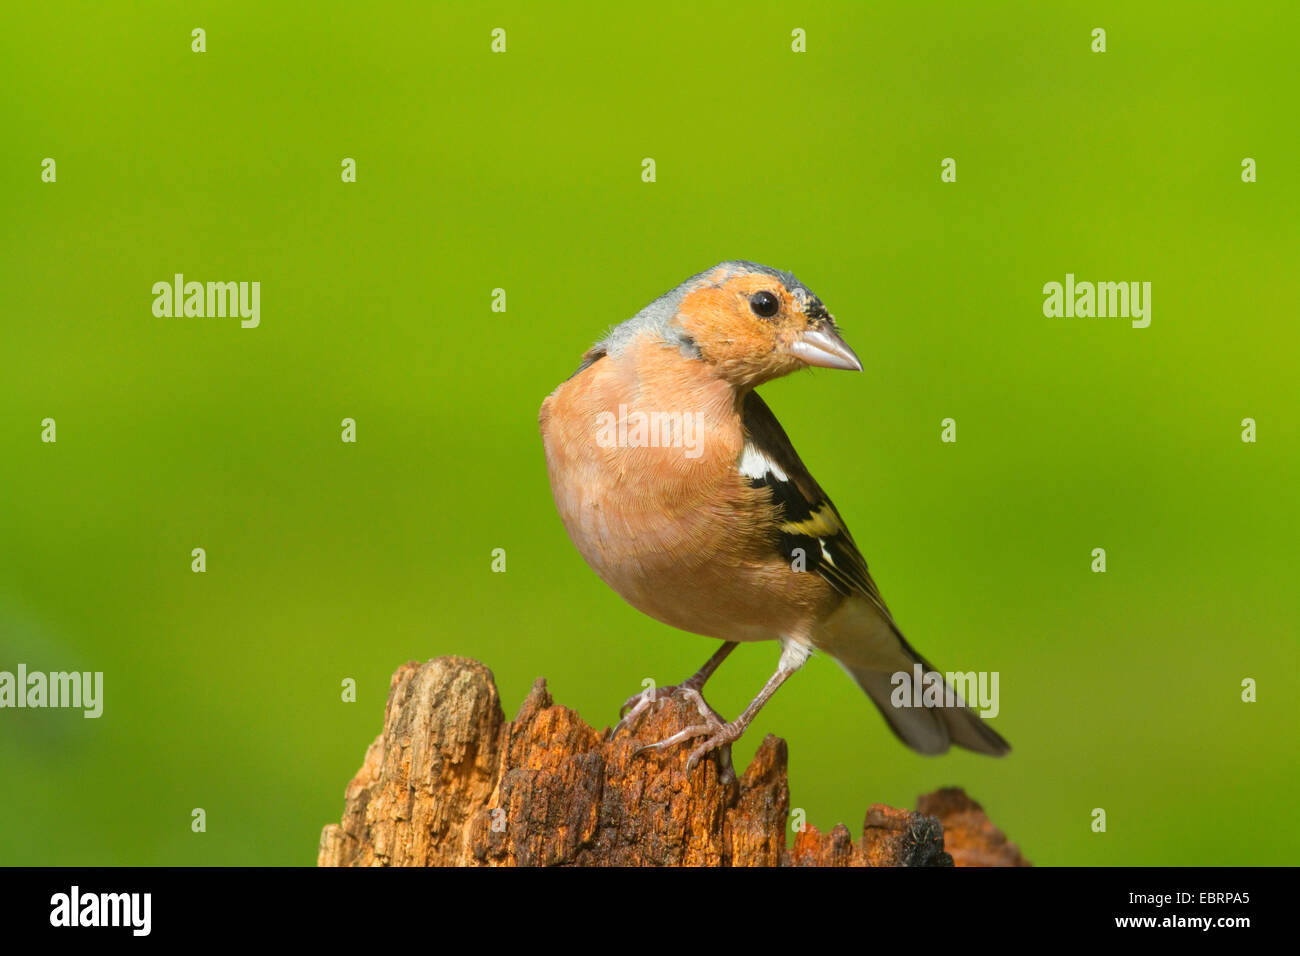 chaffinch (Fringilla coelebs), male on a tree snag, Germany, North Rhine-Westphalia - Stock Image